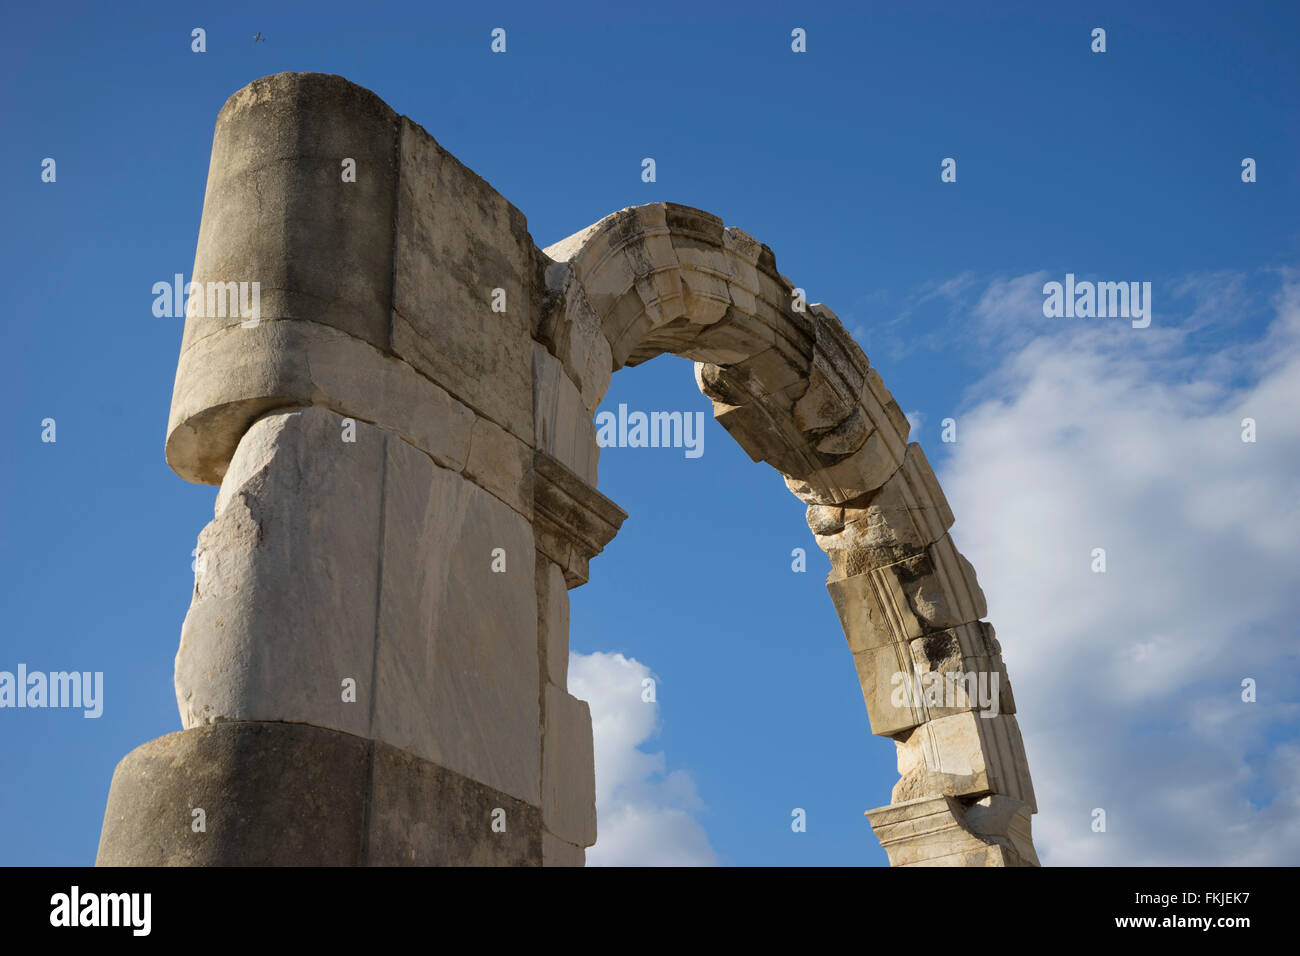 The ancient Greek and Roman periods city of Ephesus in Turkey - Stock Image